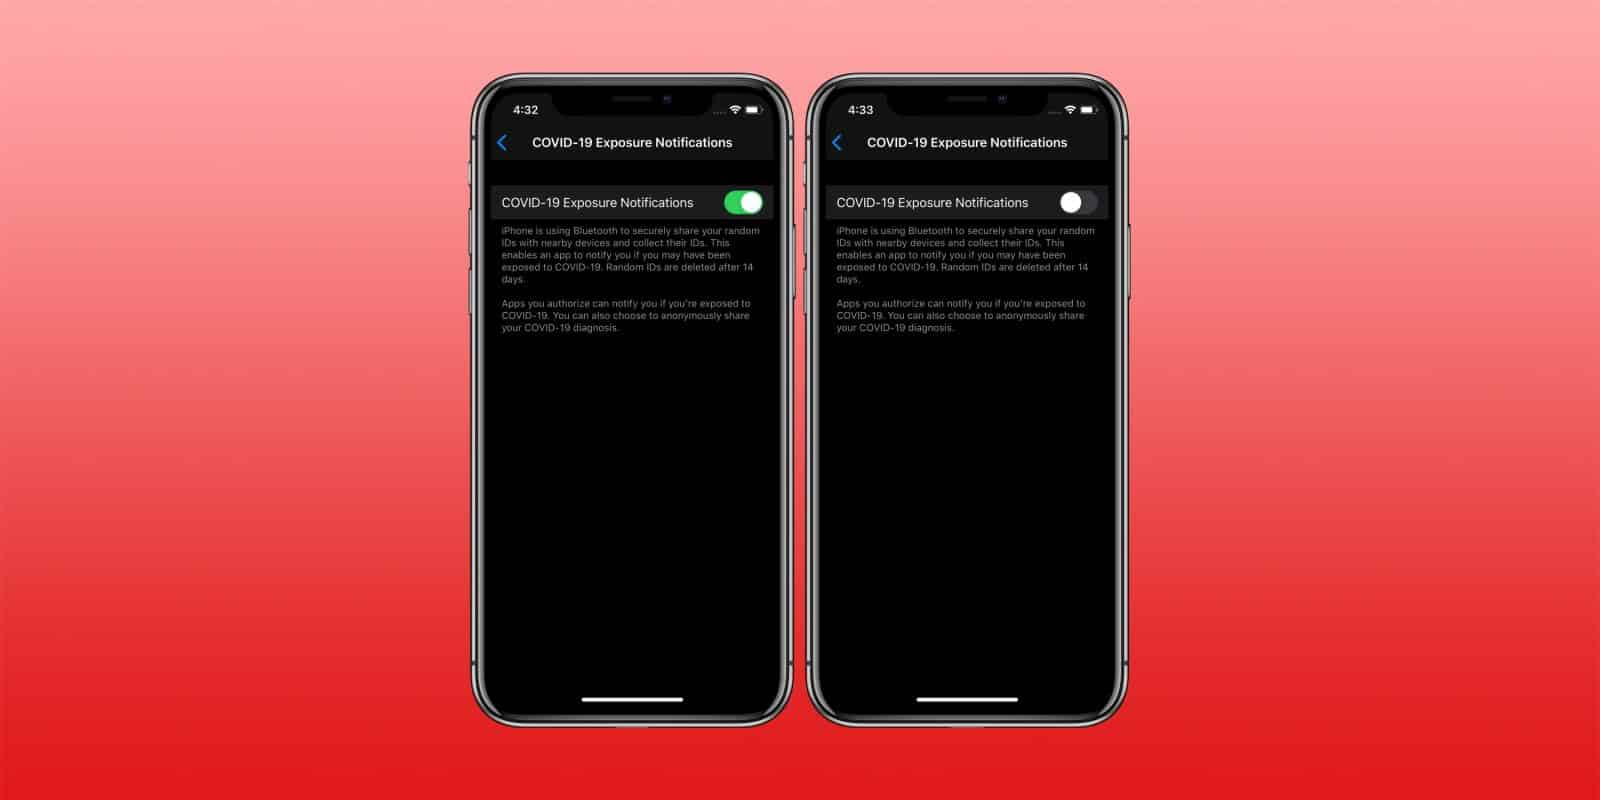 iOS 13.5 released with contact tracing features